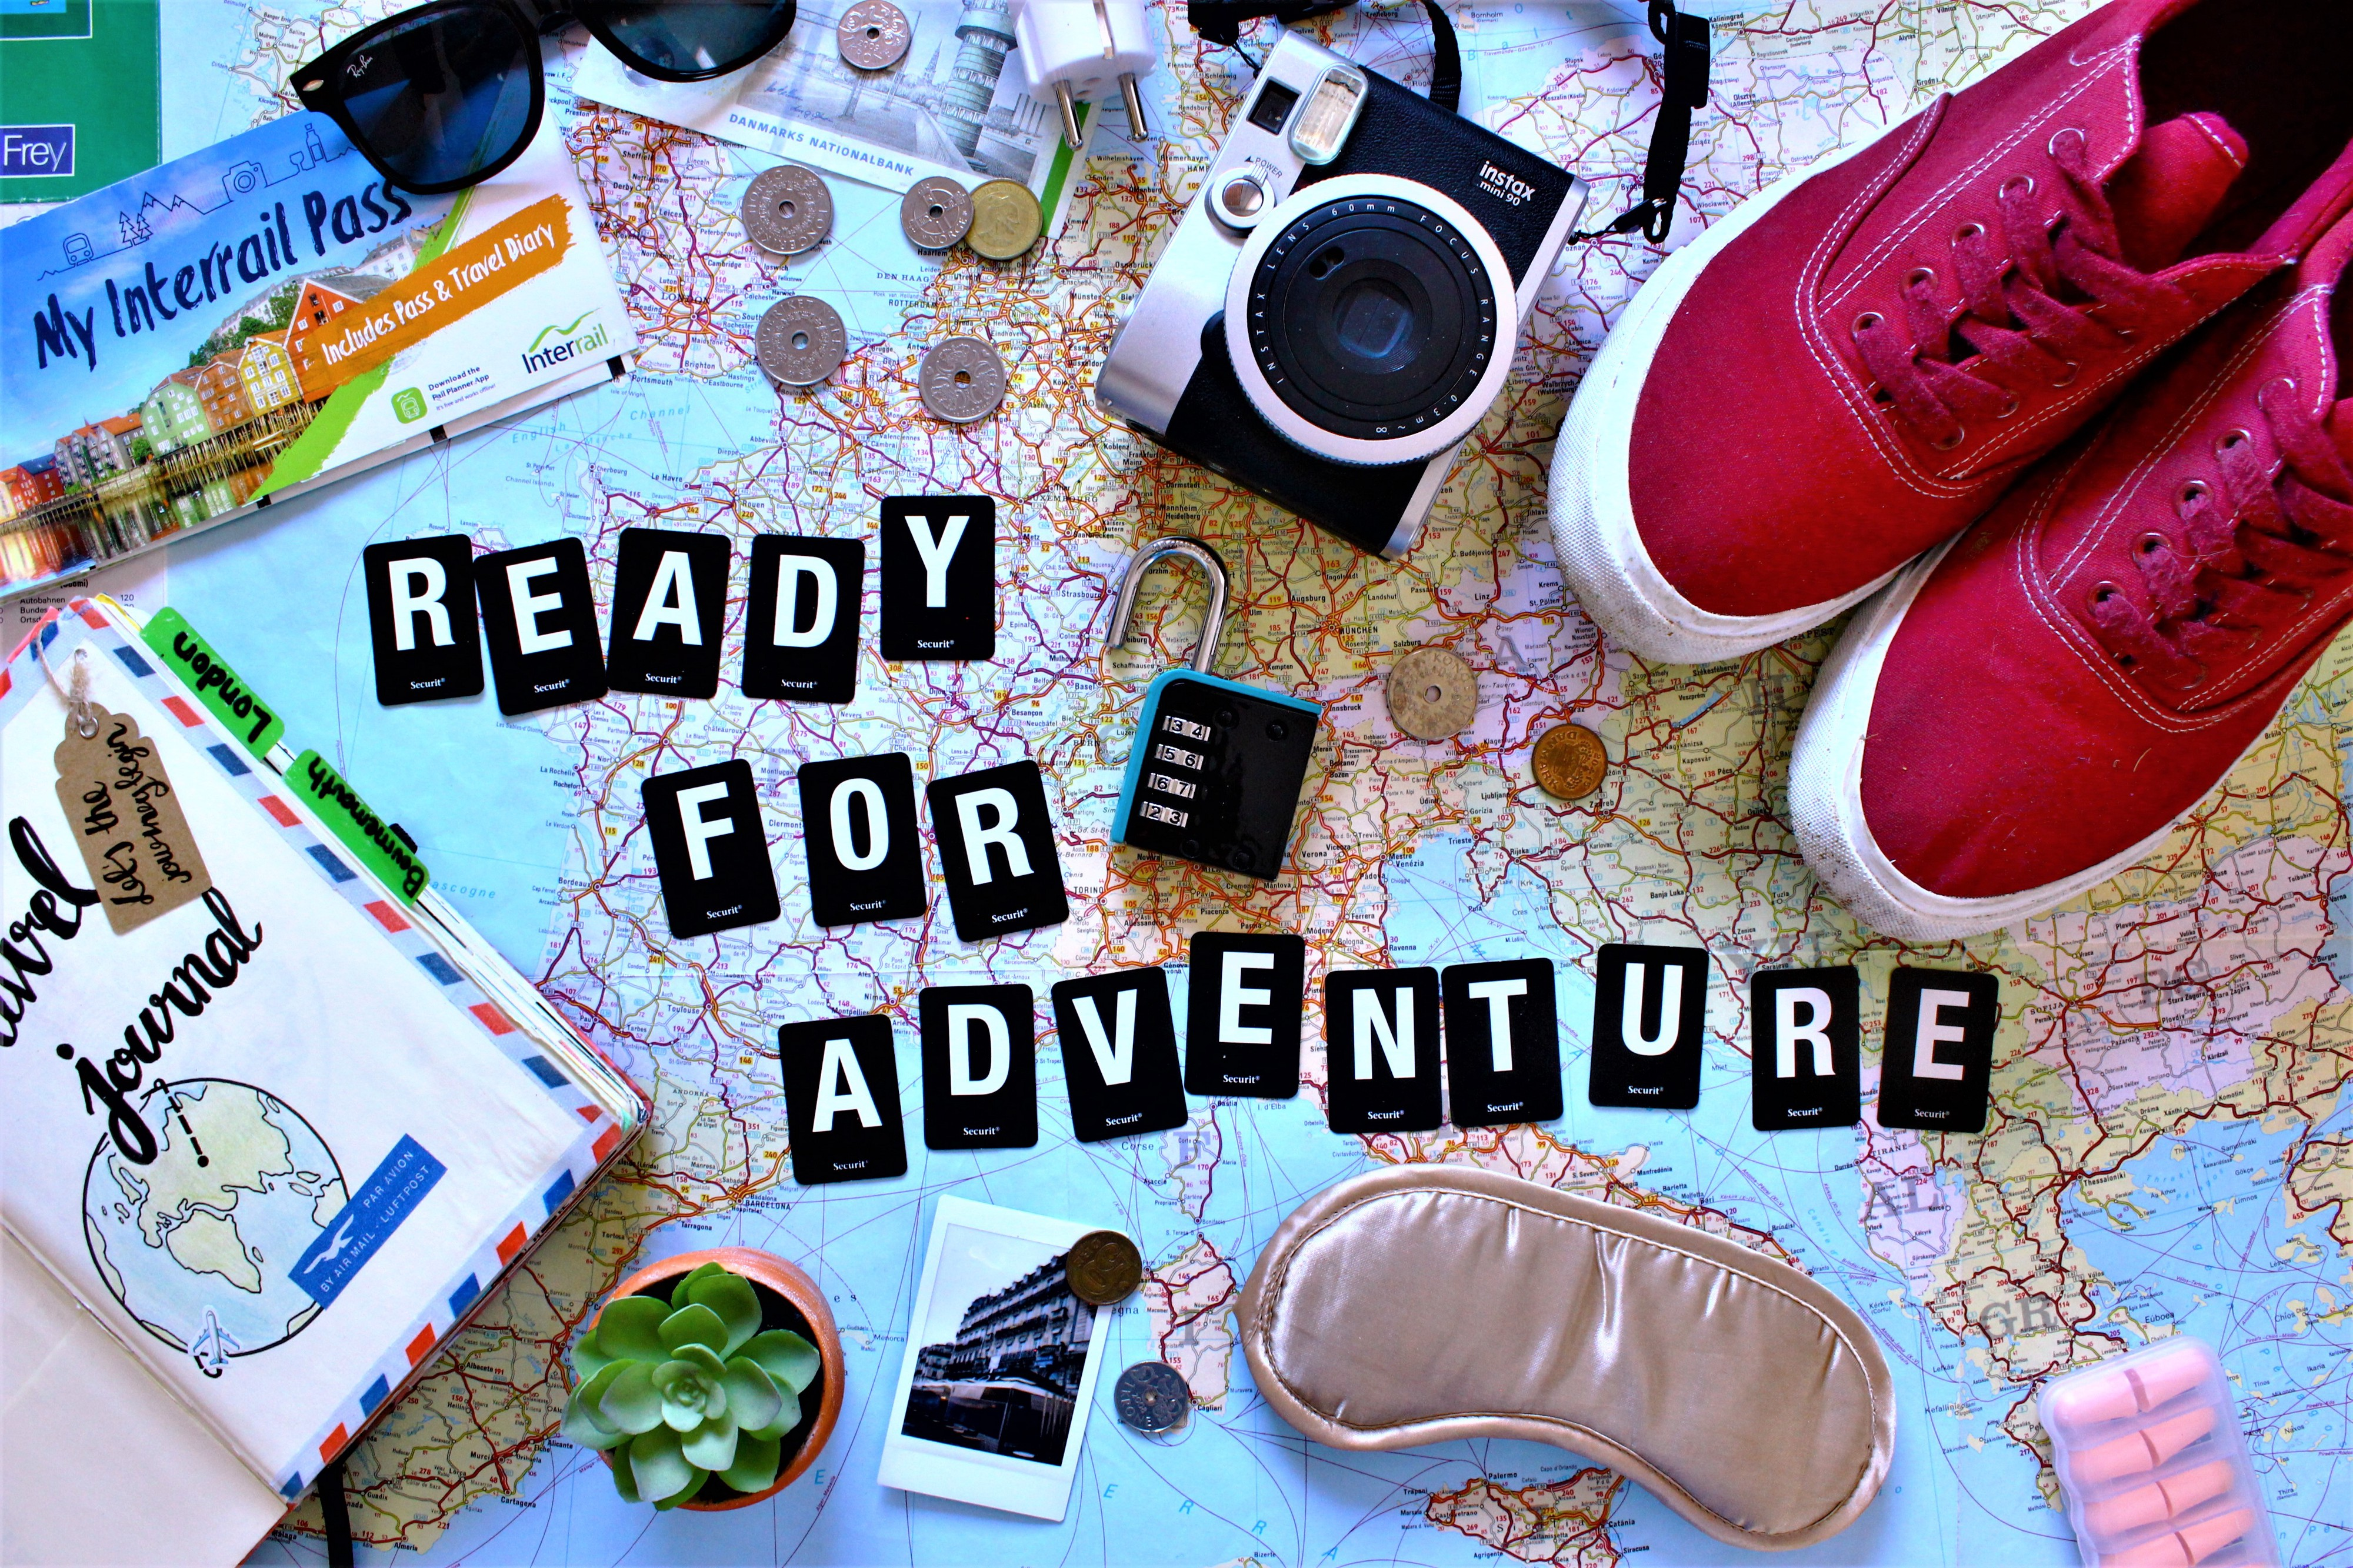 Ready For Adventure is spelt out in tiles across a world map. Shoes and a sleep mask, coins and rail pass are also spread out